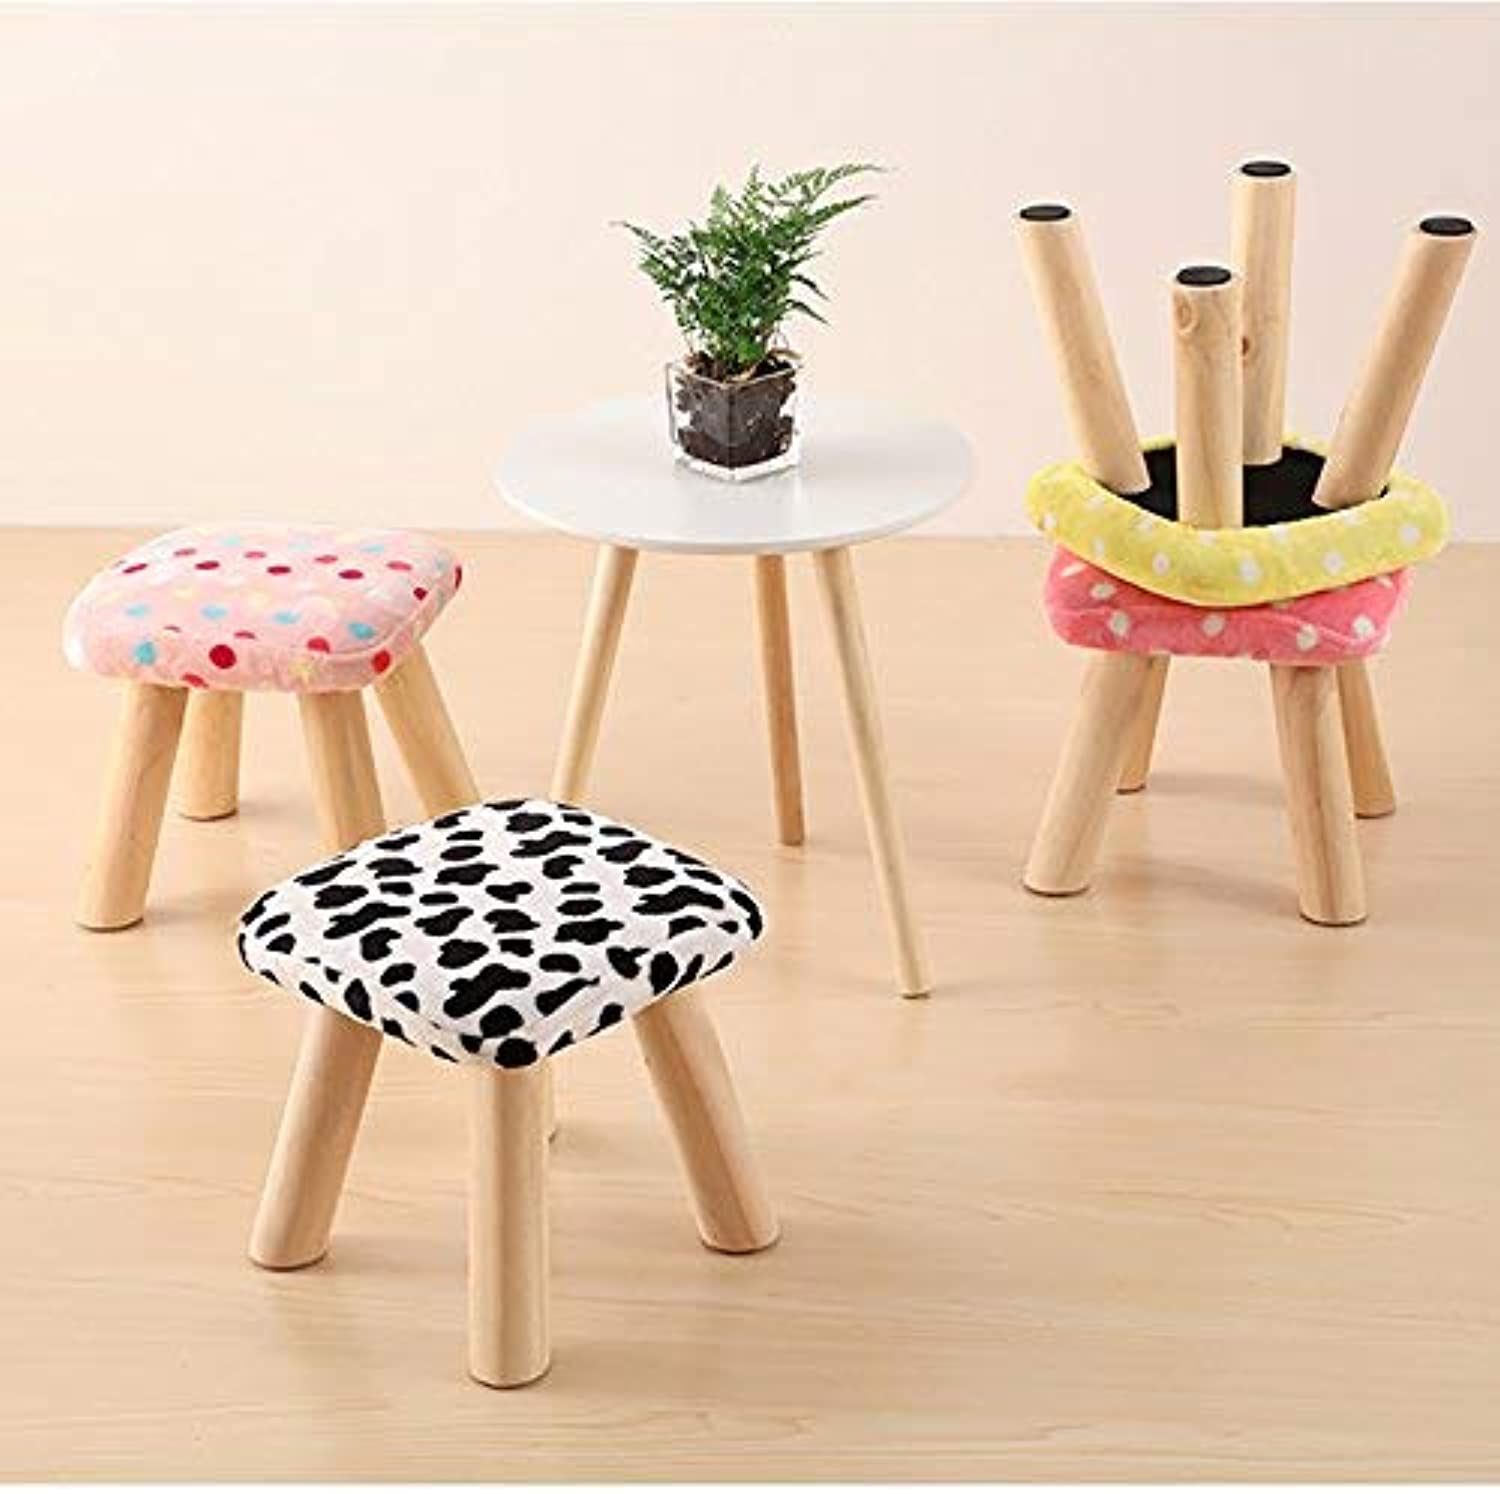 DEED Creative shoes Stool-Stool Footstool Square Small Mushroom Flannel Solid Wood Legs Household Change shoes Small Bench,Home Stool